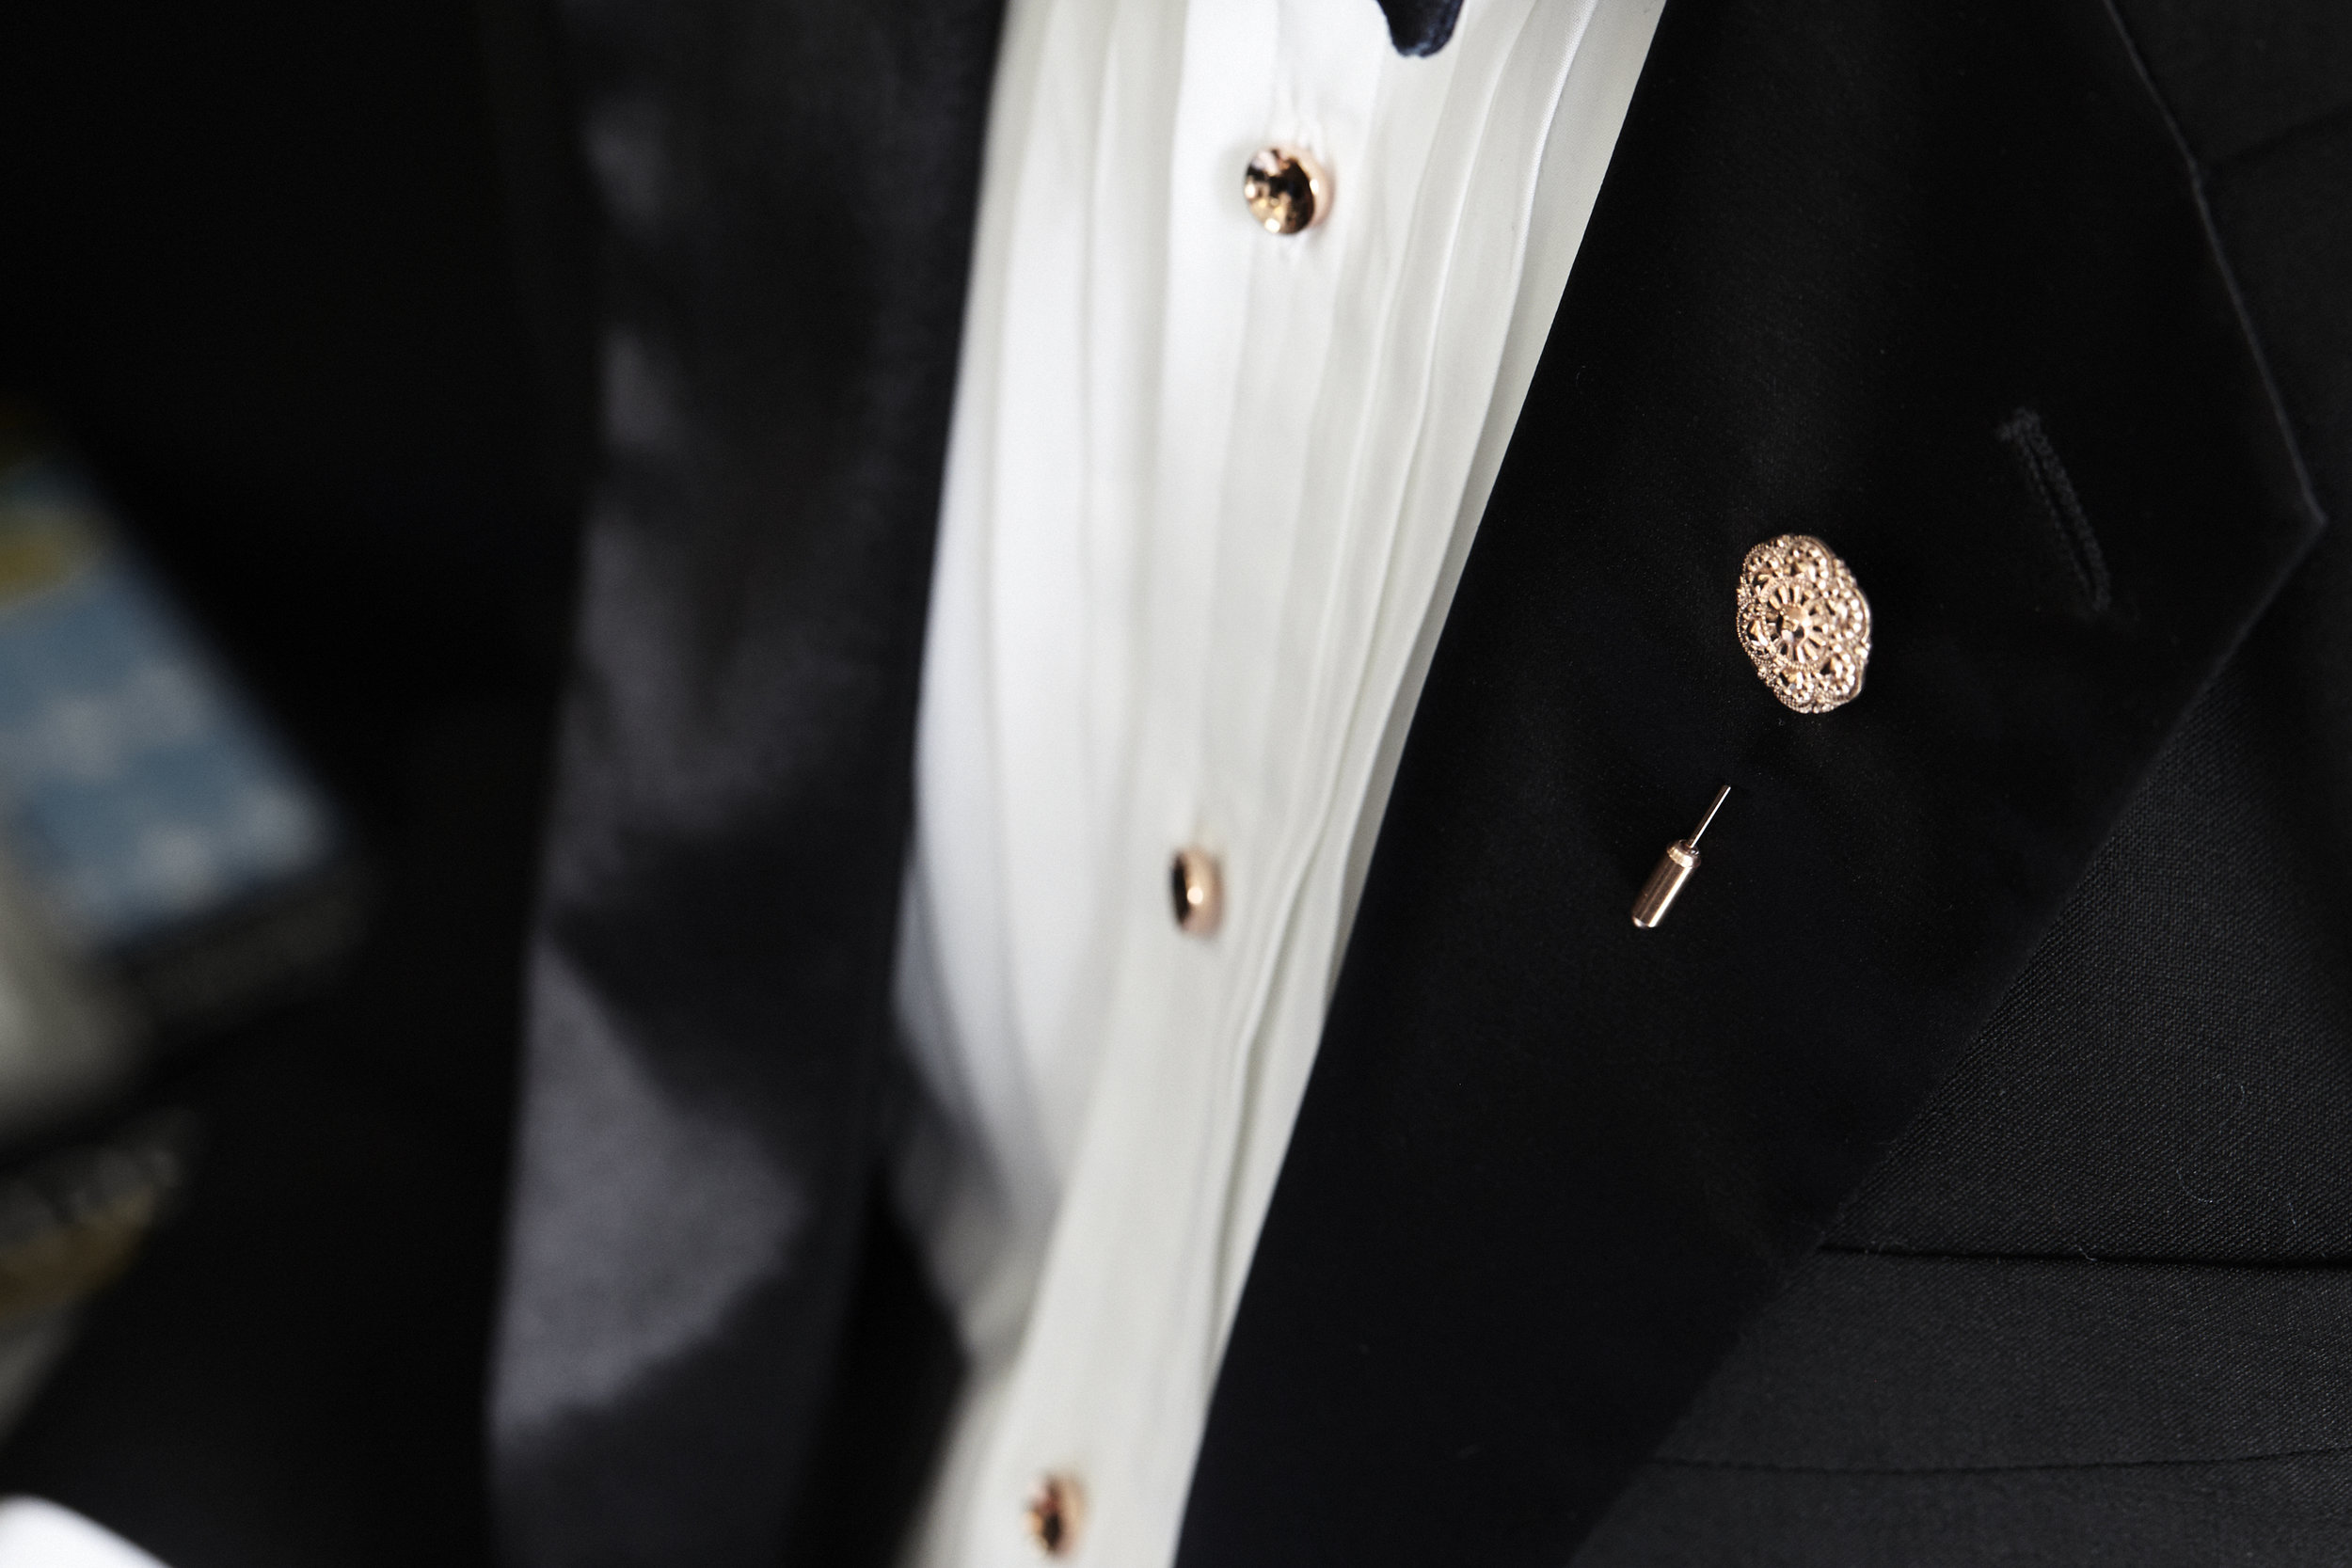 Copper-Shirt-Studs_Rose-Gold-Lapel-Pin_Alice-Made-This_Reflections.jpg